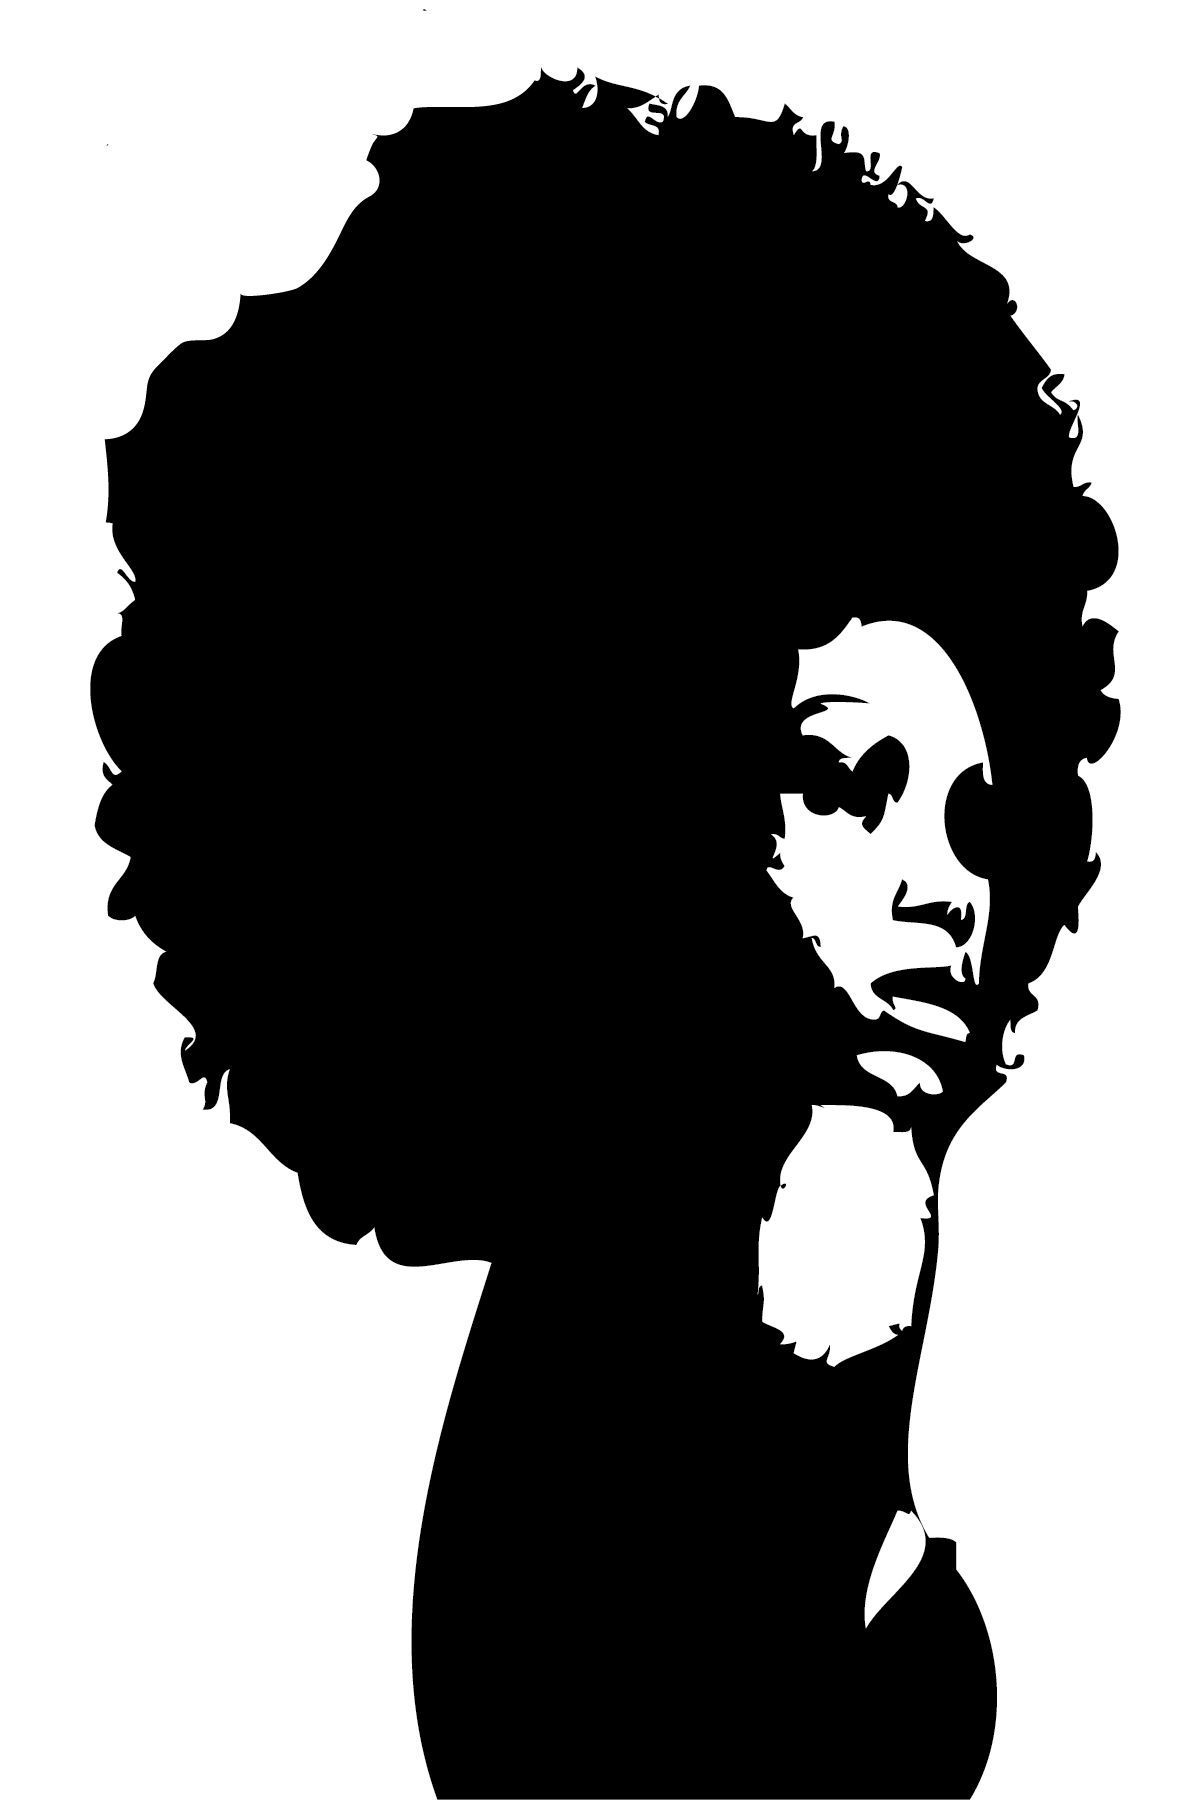 Free lady cliparts download. Afro clipart illustration